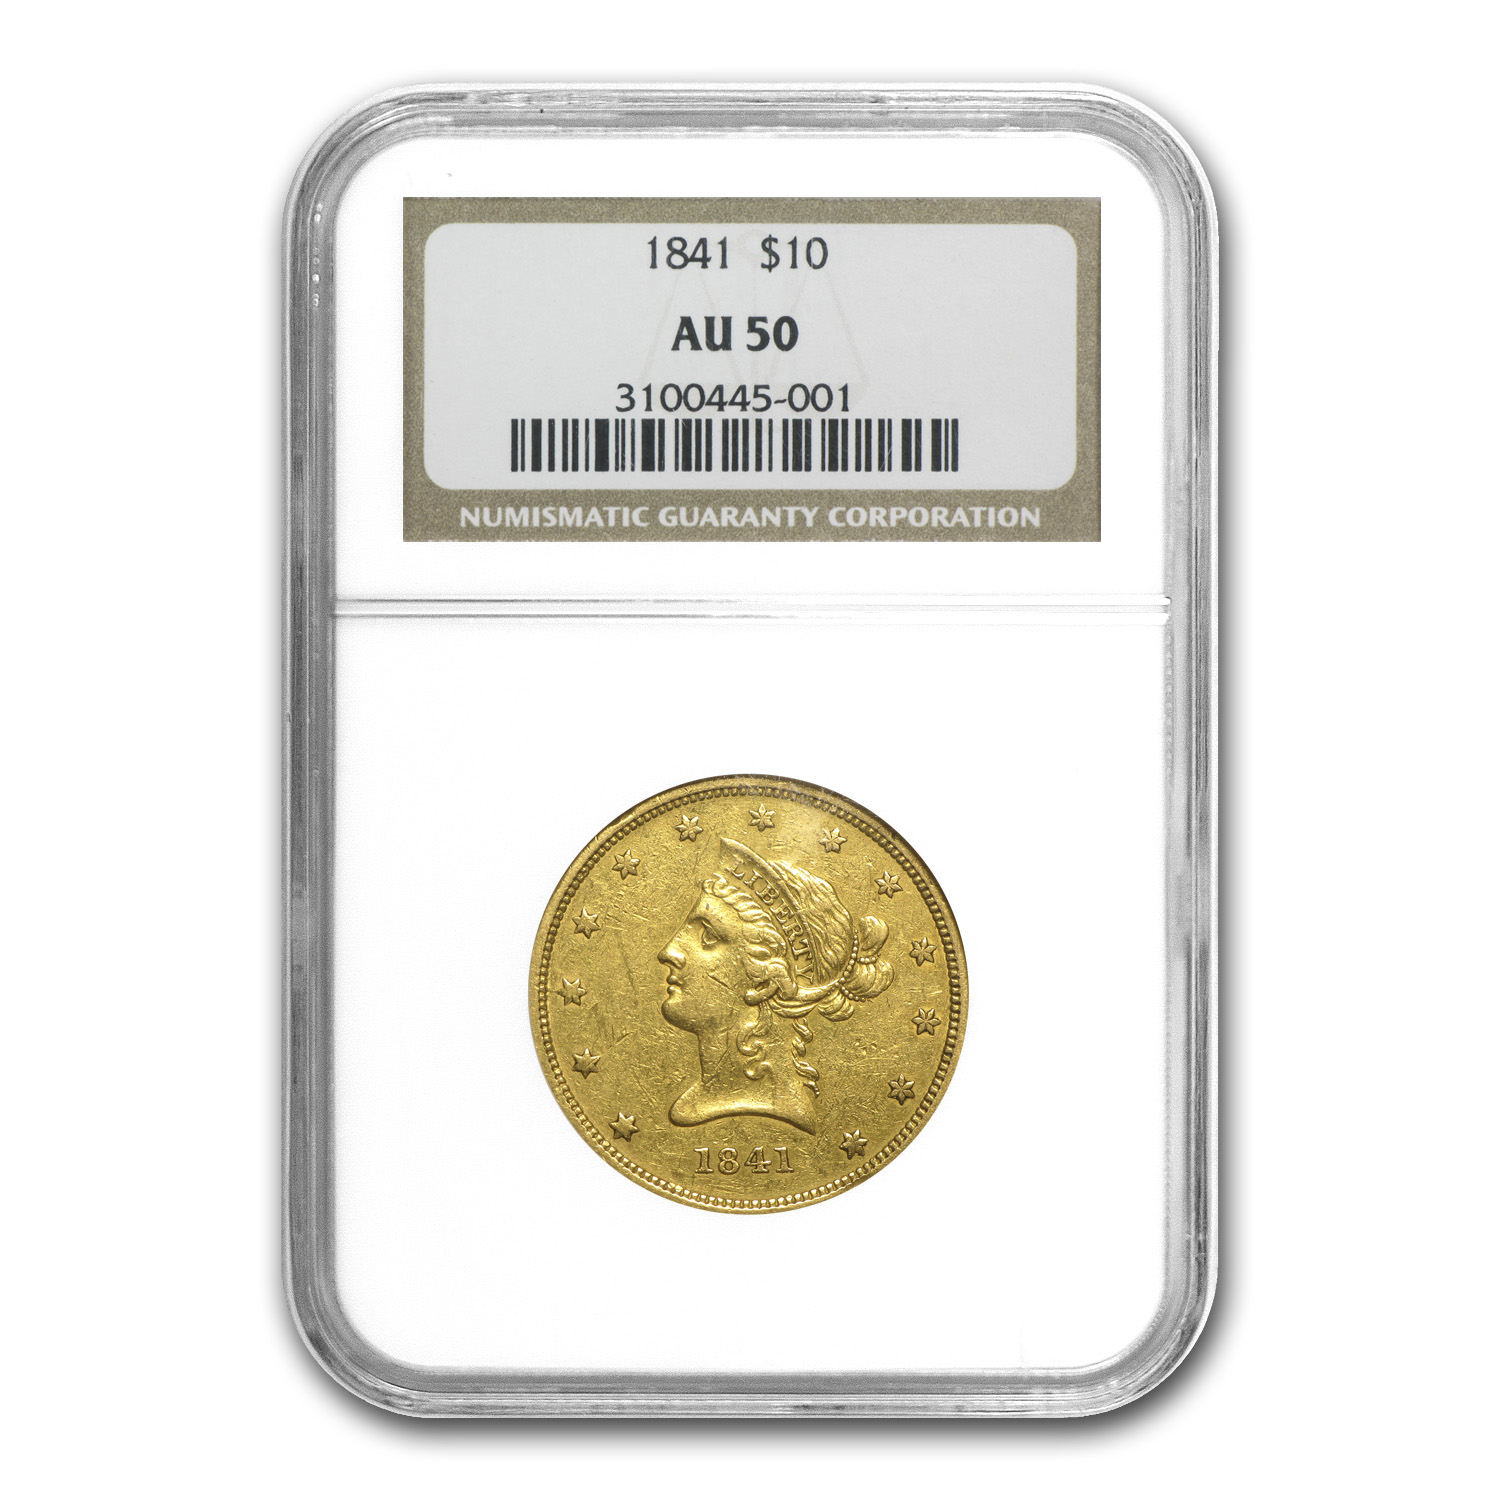 1841 $10 Liberty Gold Eagle - AU-50 NGC